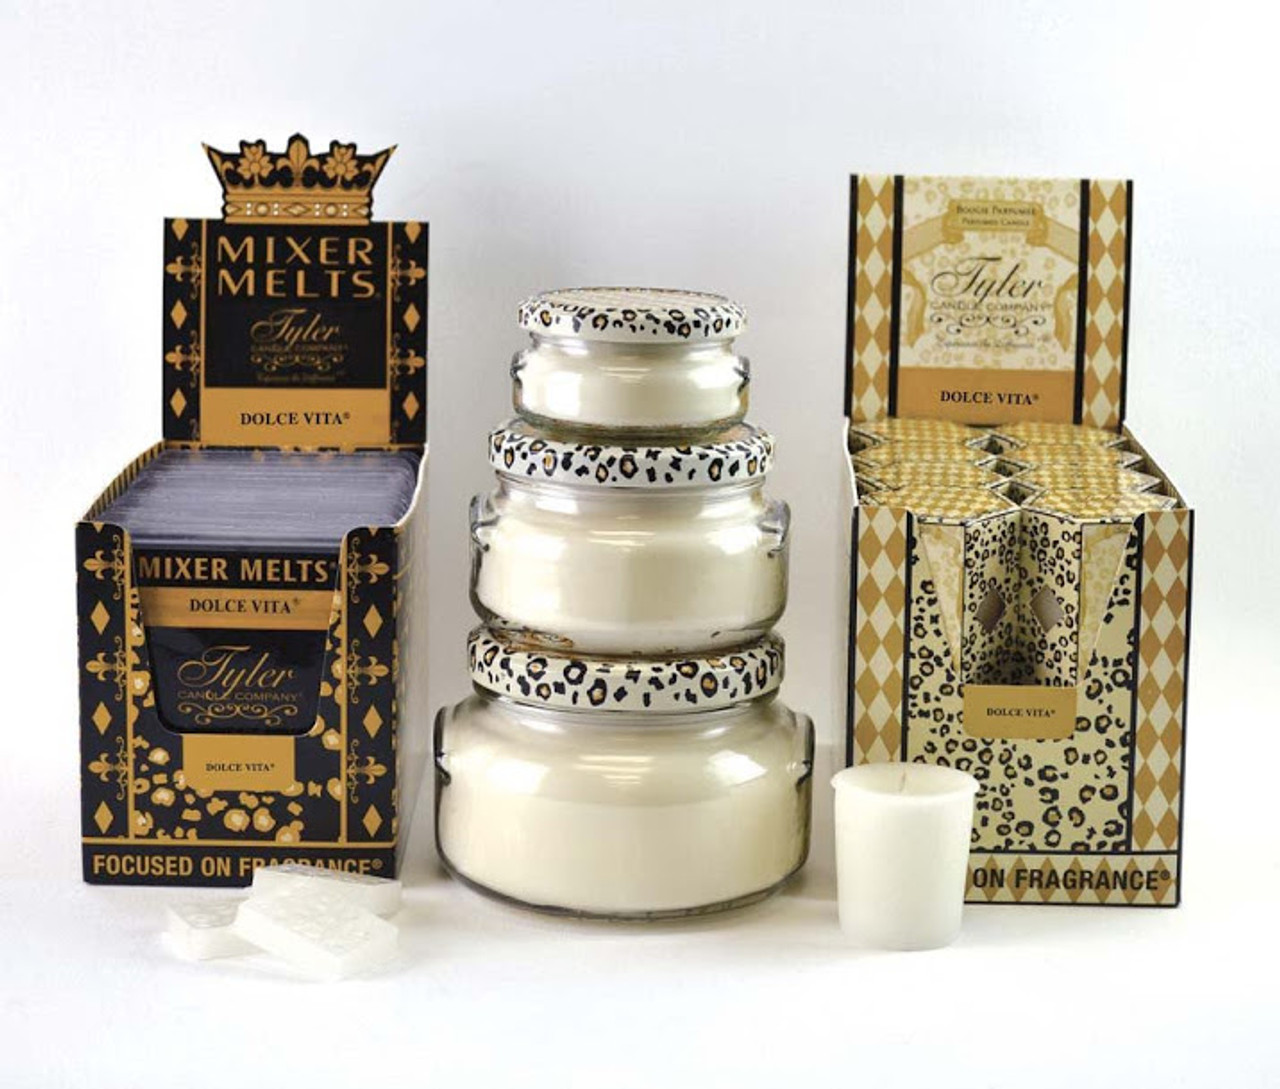 Mixer Melts DOLCE VITA® Tyler Candle Company